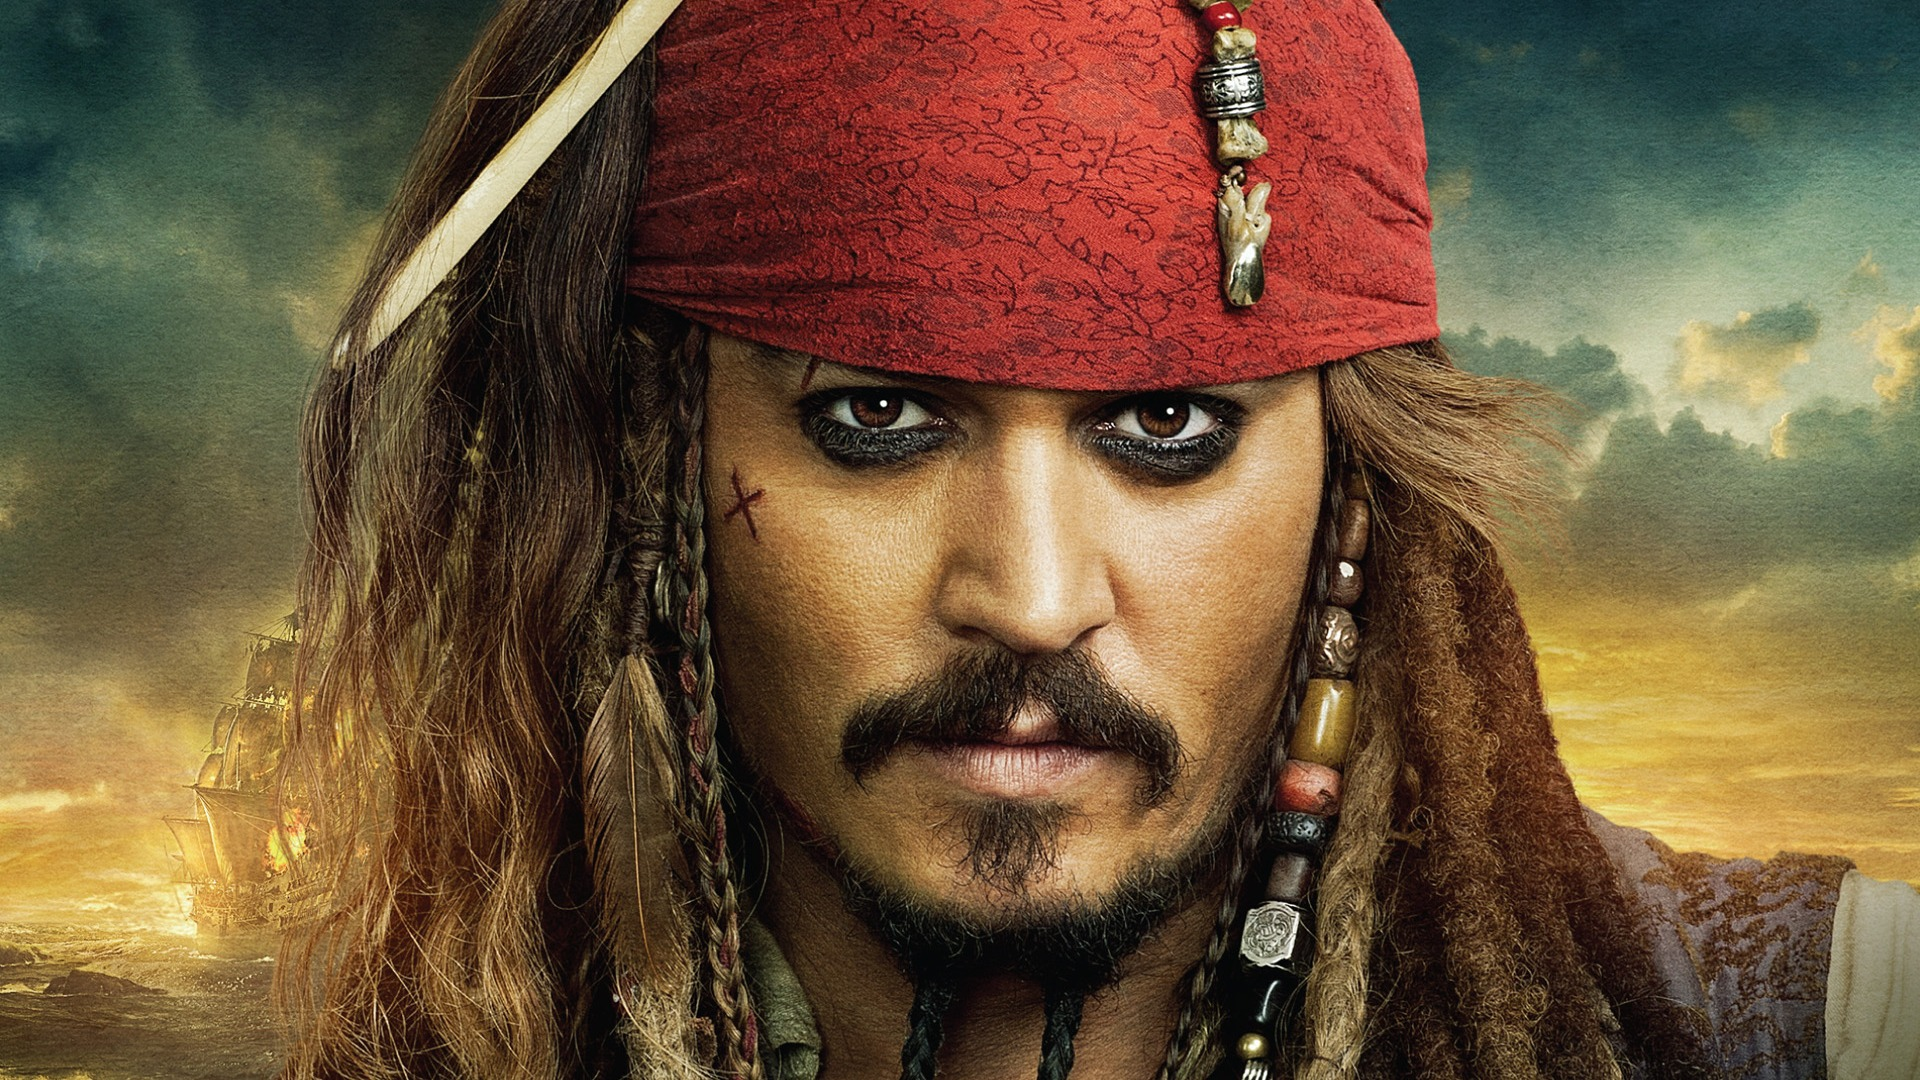 pirates of the caribbean wallpaper 1920x1080